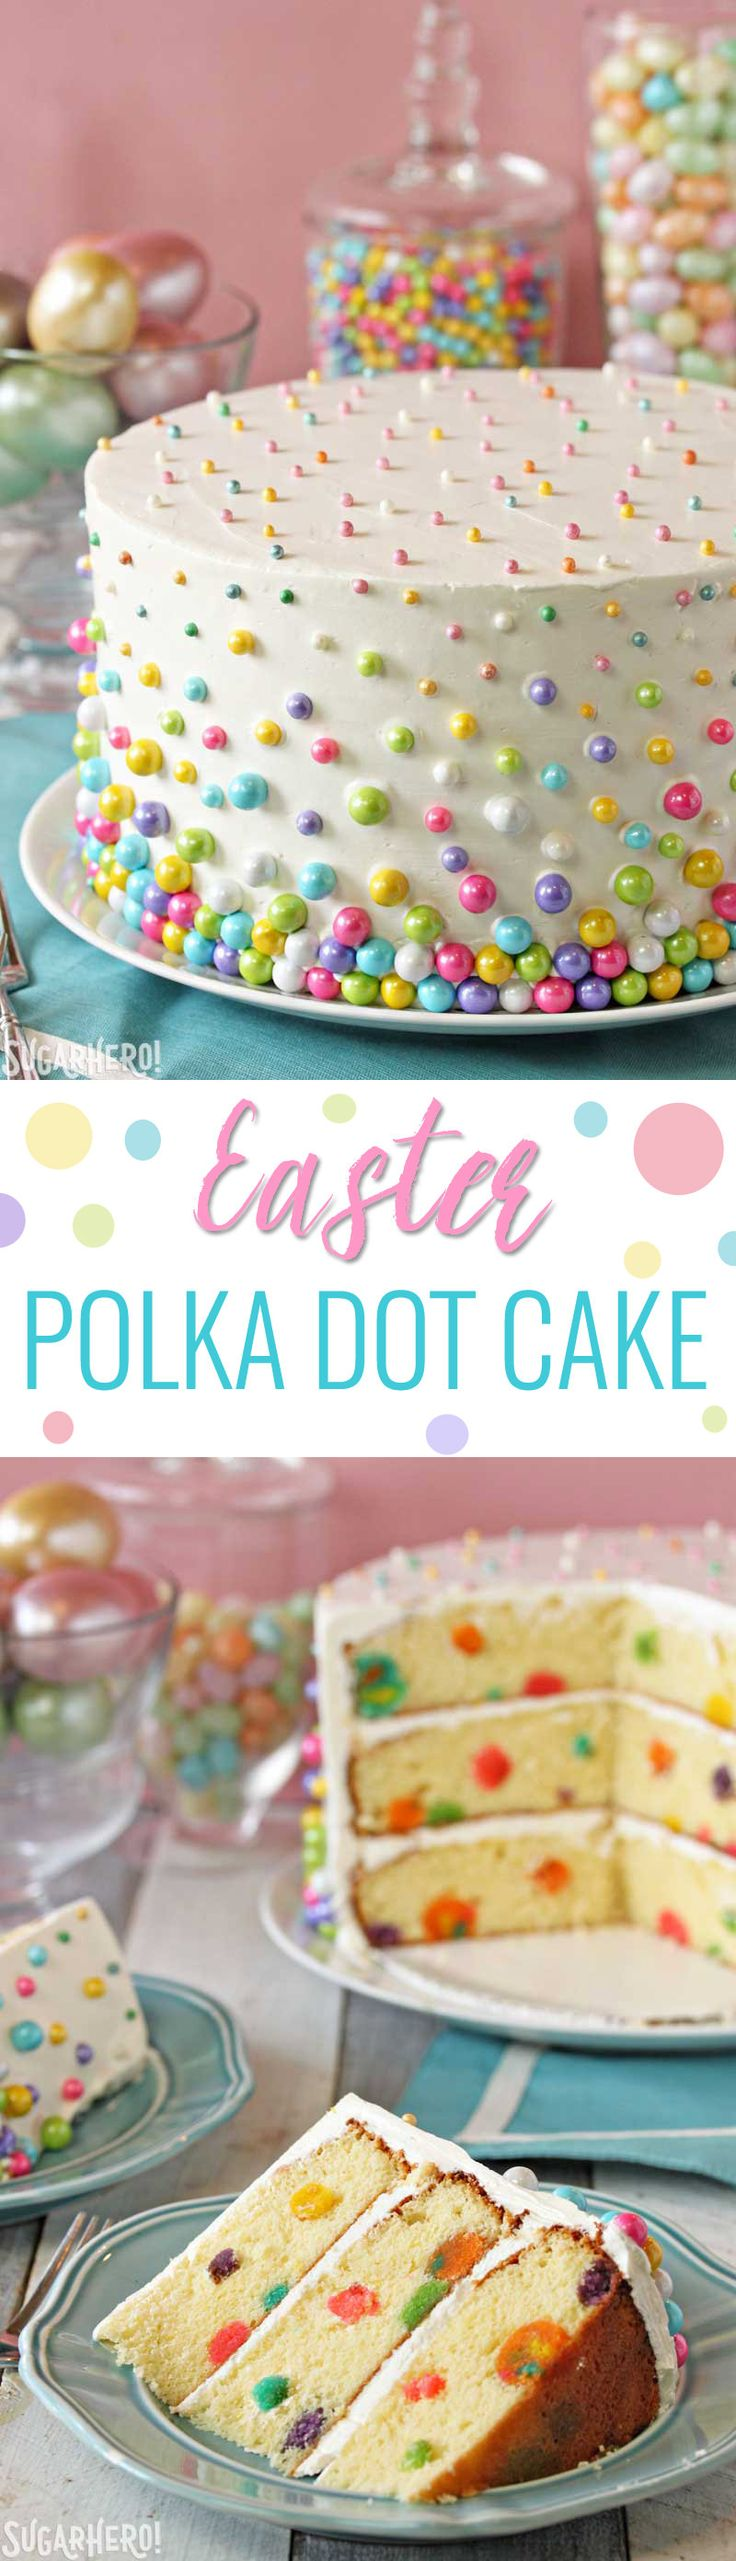 Easter Polka Dot Cake - a spring cake with polka dots on the outside AND inside of the cake!   From SugarHero.com